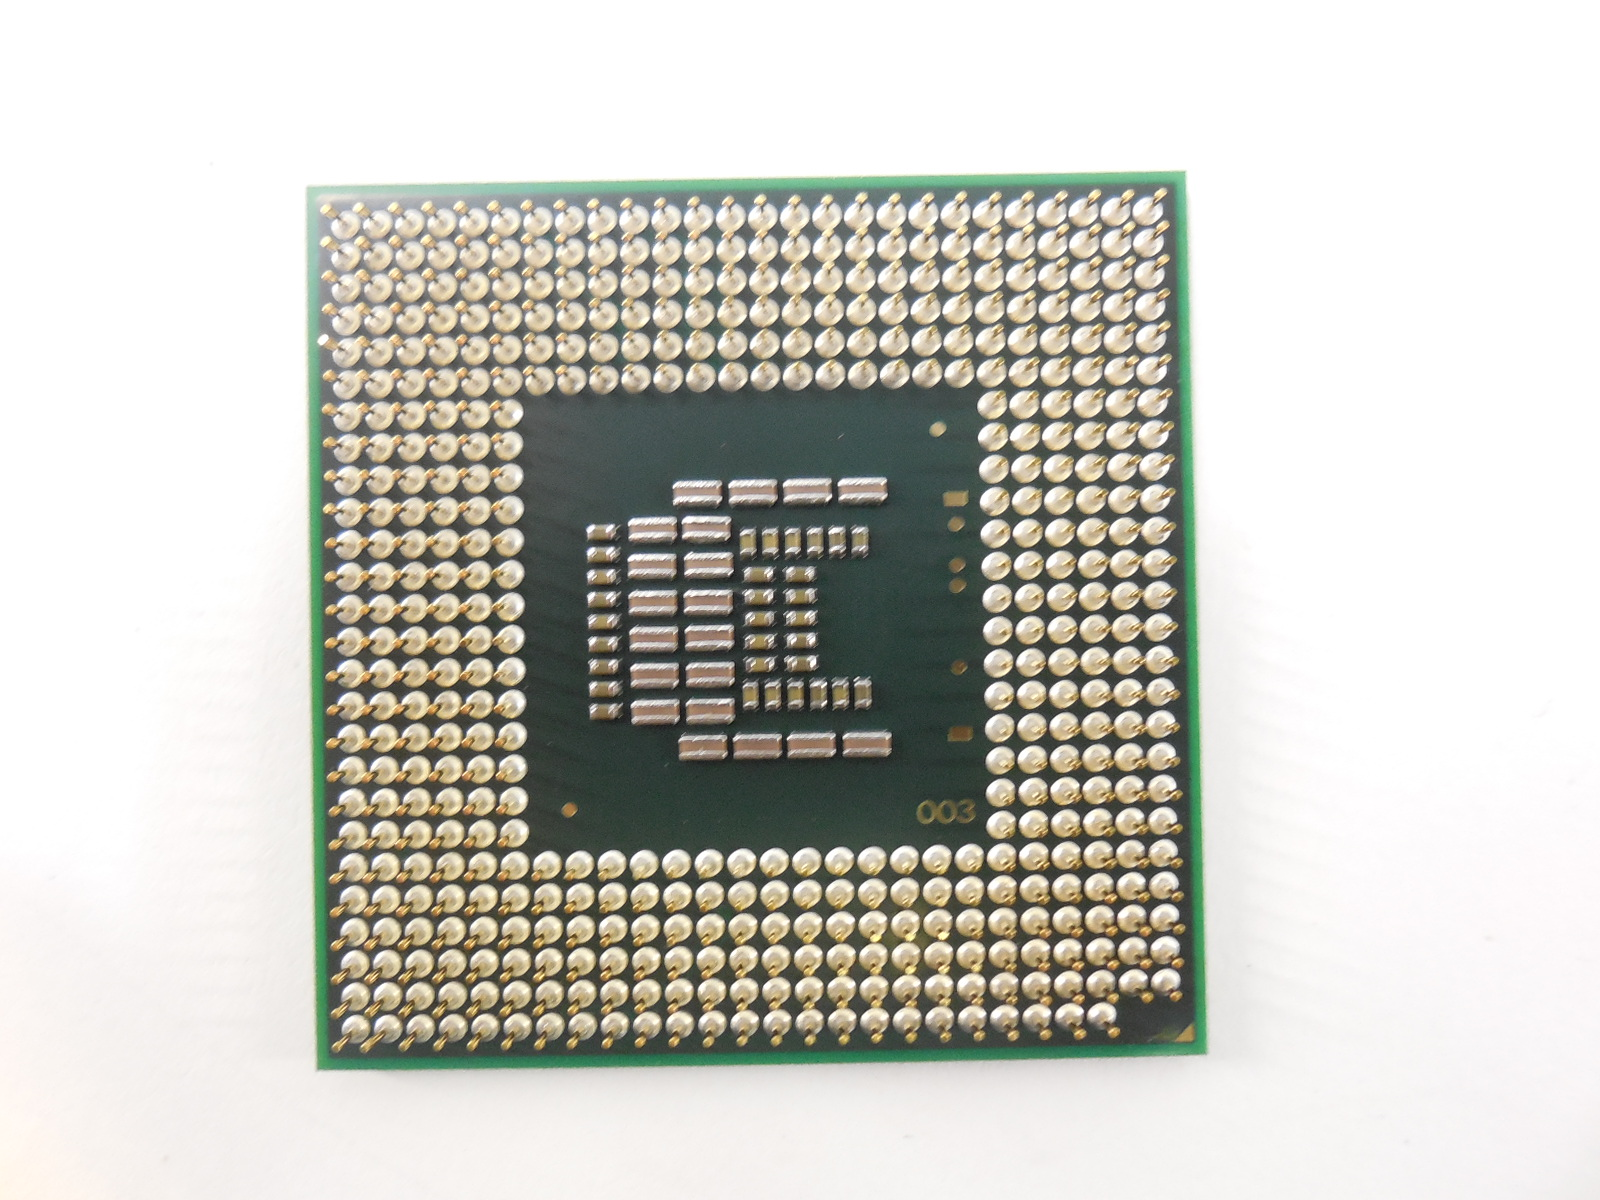 Процессор Intel Core 2 Duo Processor P8400 2.26GHz - Pic n 260475